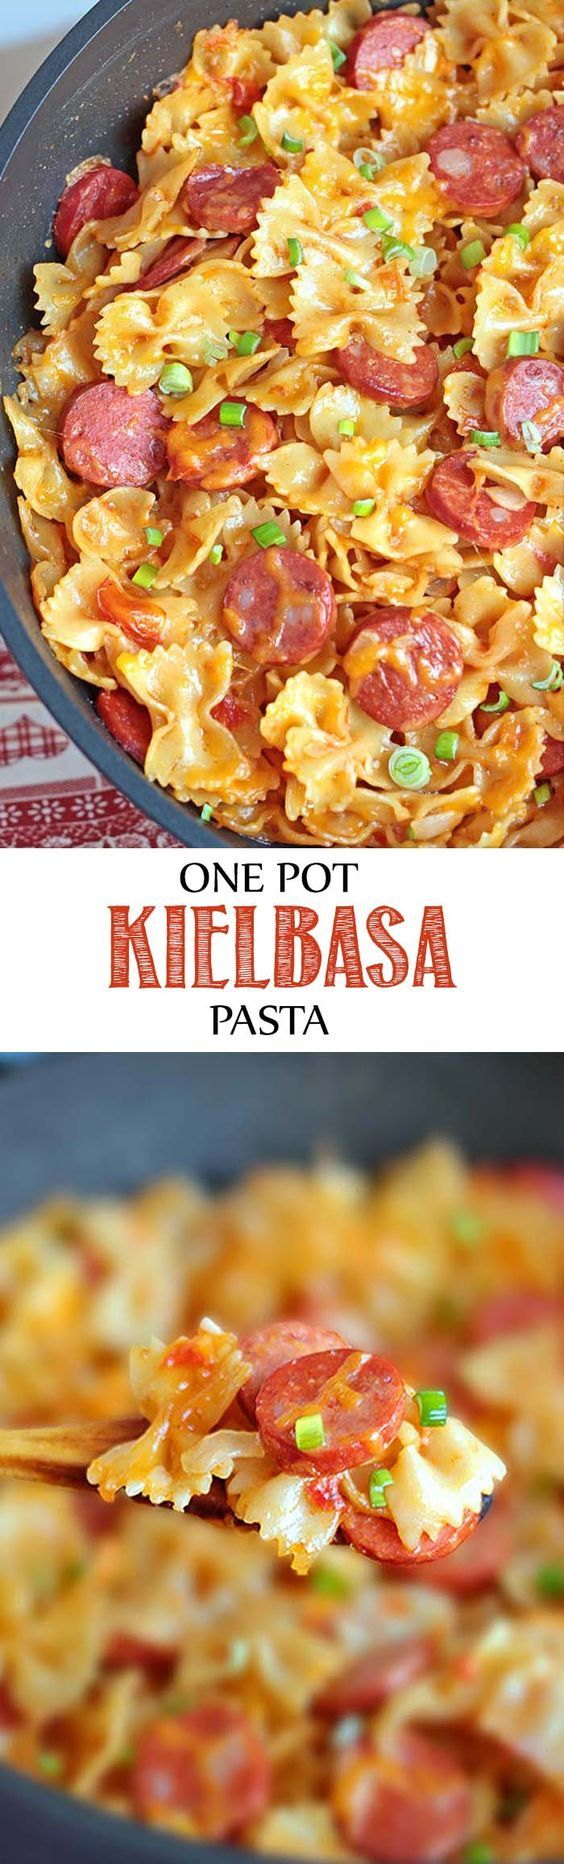 One Pot Kielbasa Pasta - It's a cheesy pasta dish with Kielbasa sausage and garnished with chopped scallions.- Perfect with Johnsonville Smoked Kielbasa.